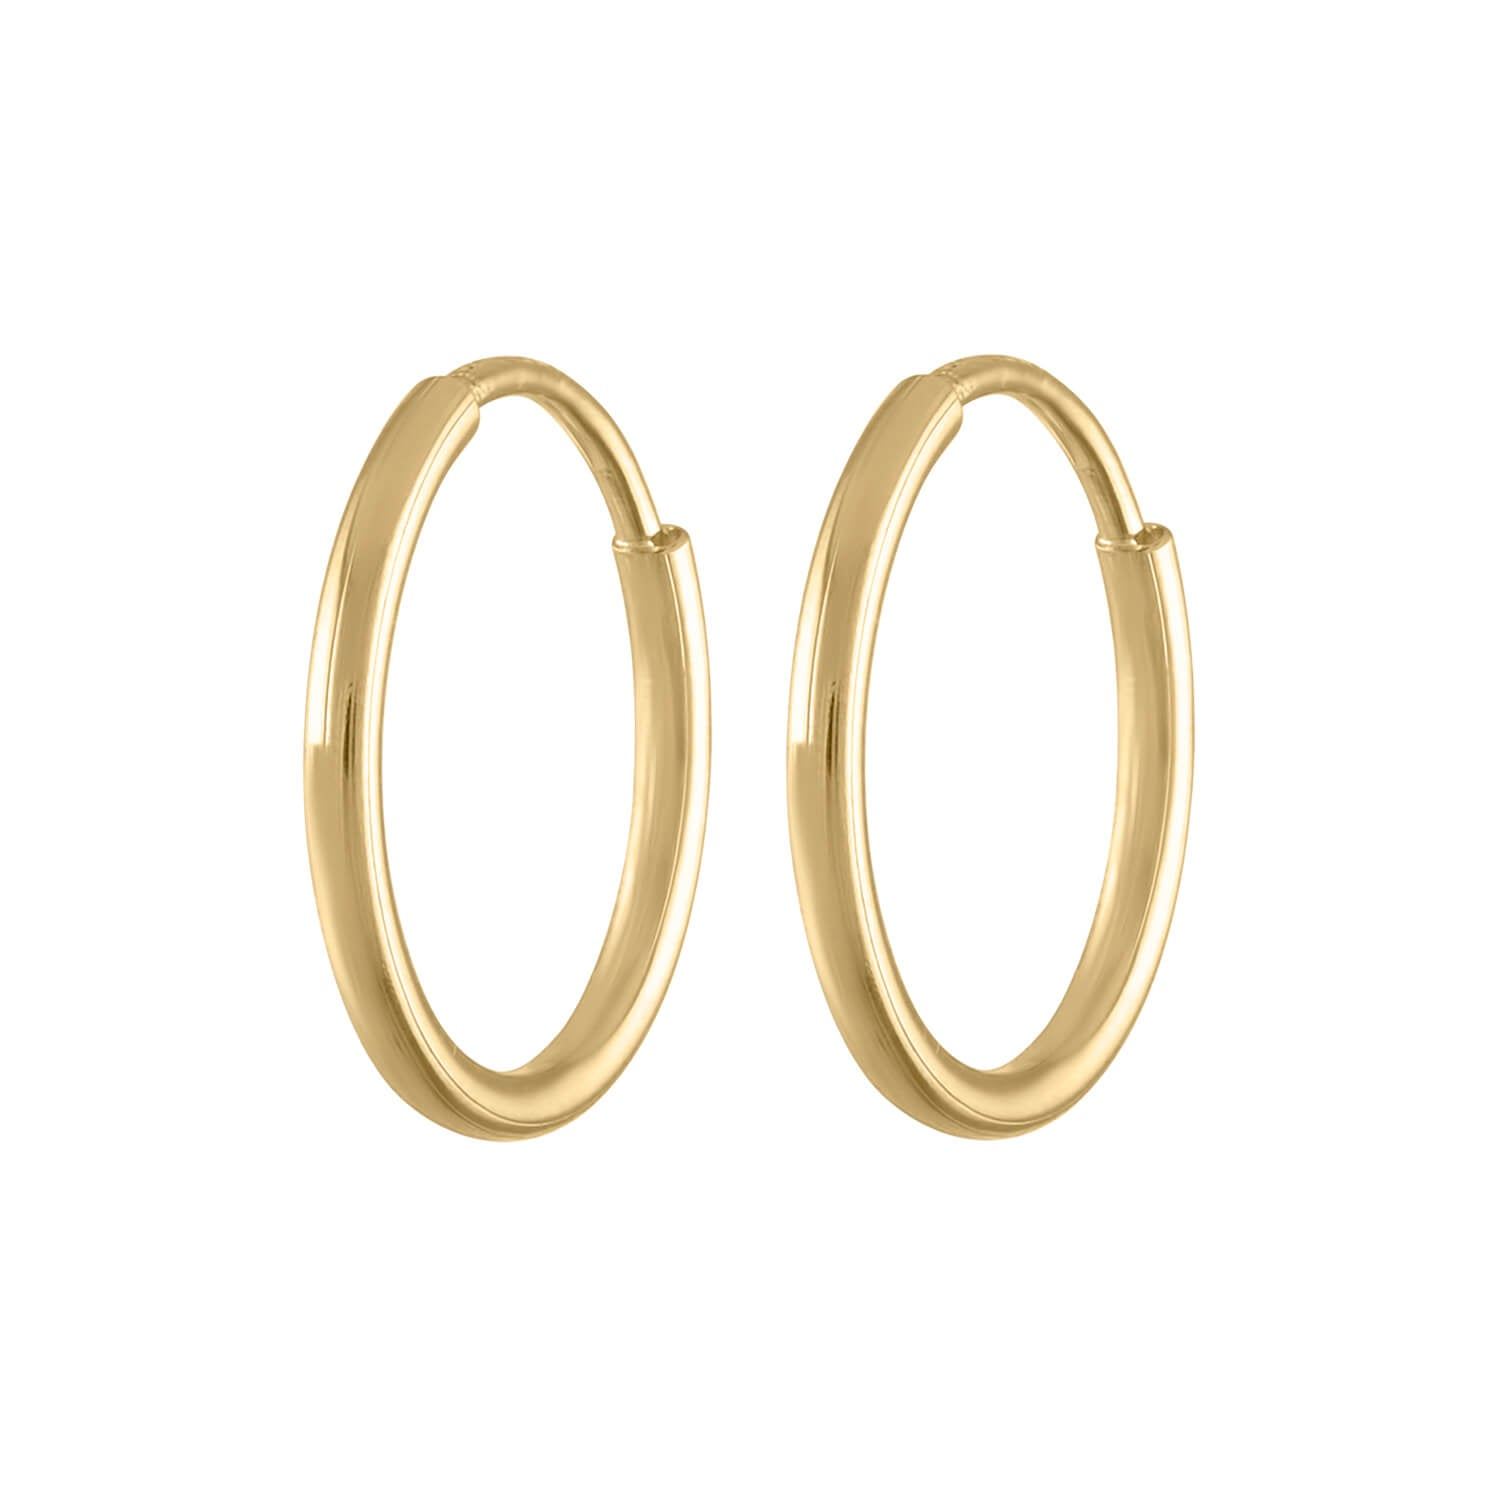 6f501a444c720 Mini Forever Hoops in 14k Gold | Maison Miru